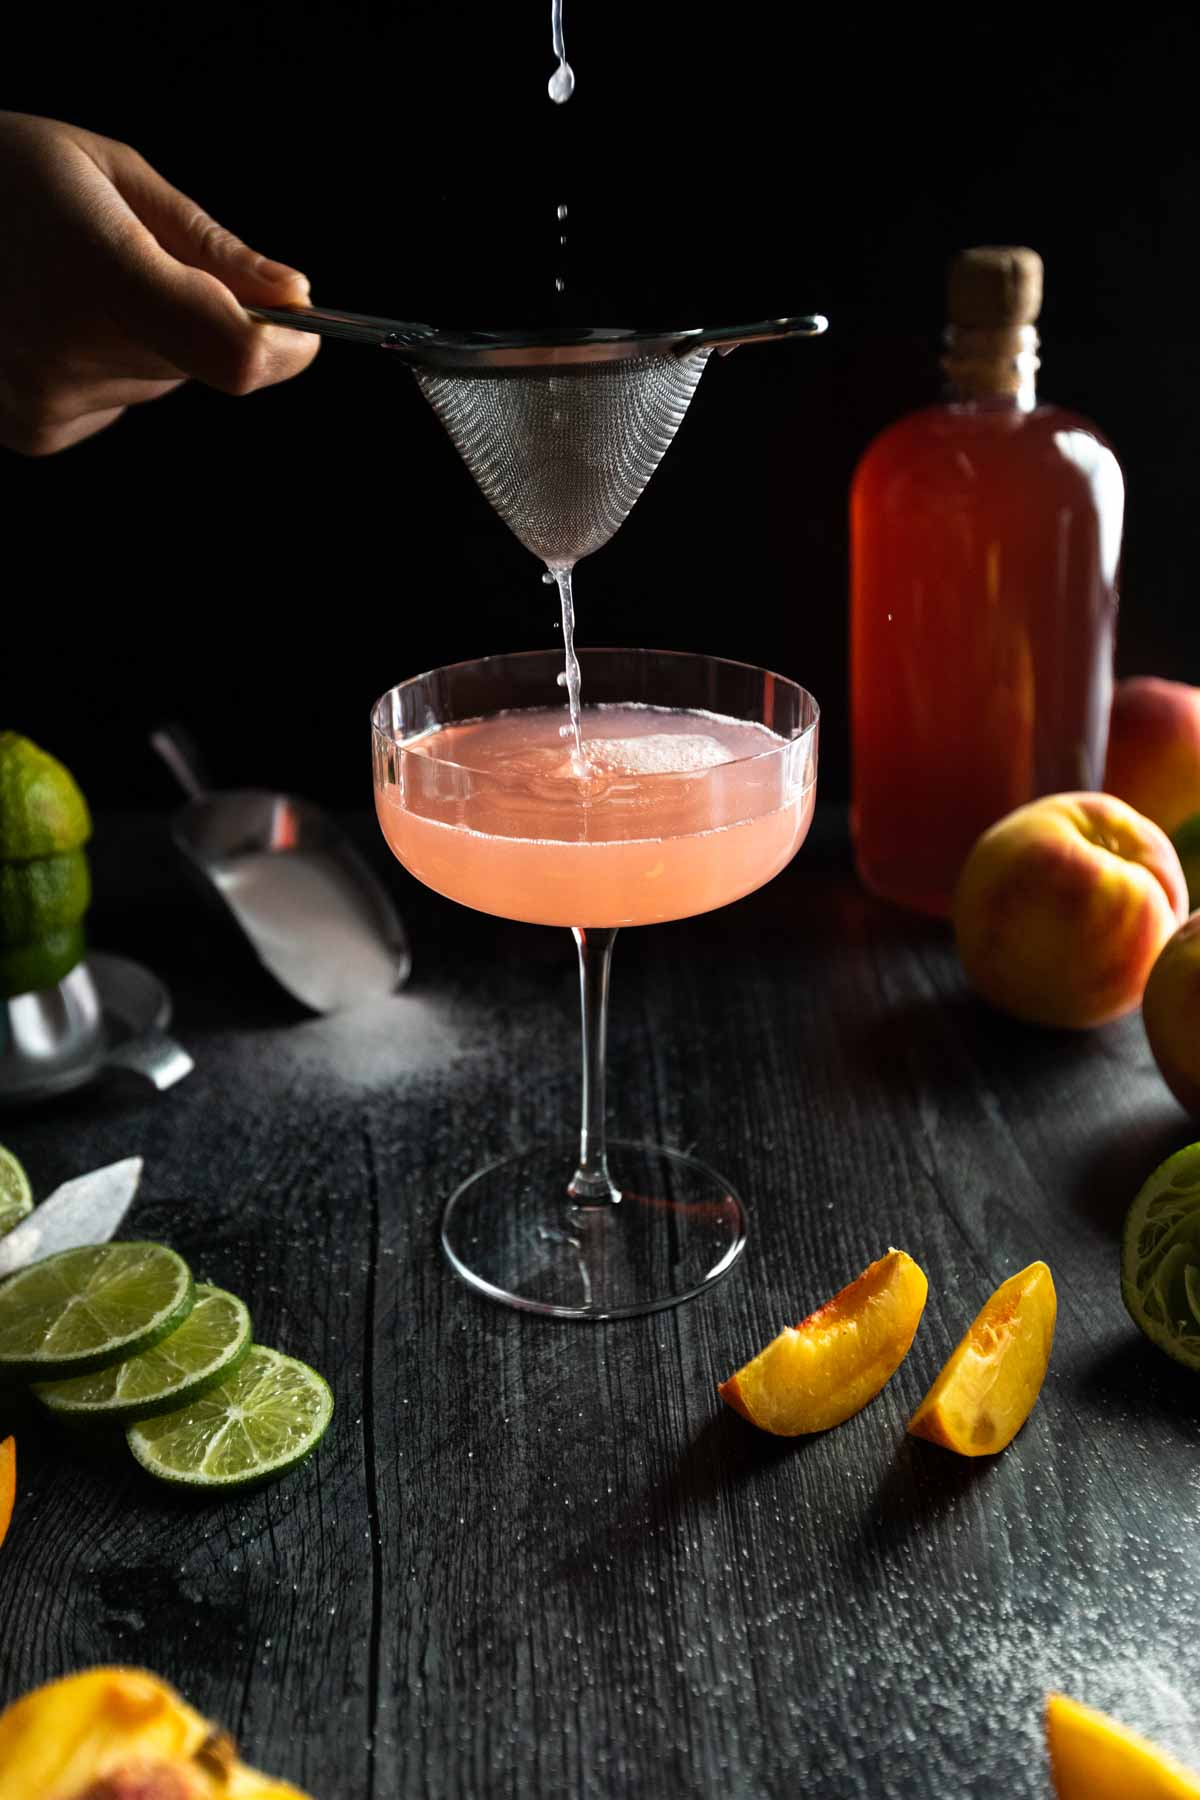 The last drops of a peach daiquiri being poured and strained through a tea strainer into a coupe glass surrounded by sliced limes and peaches